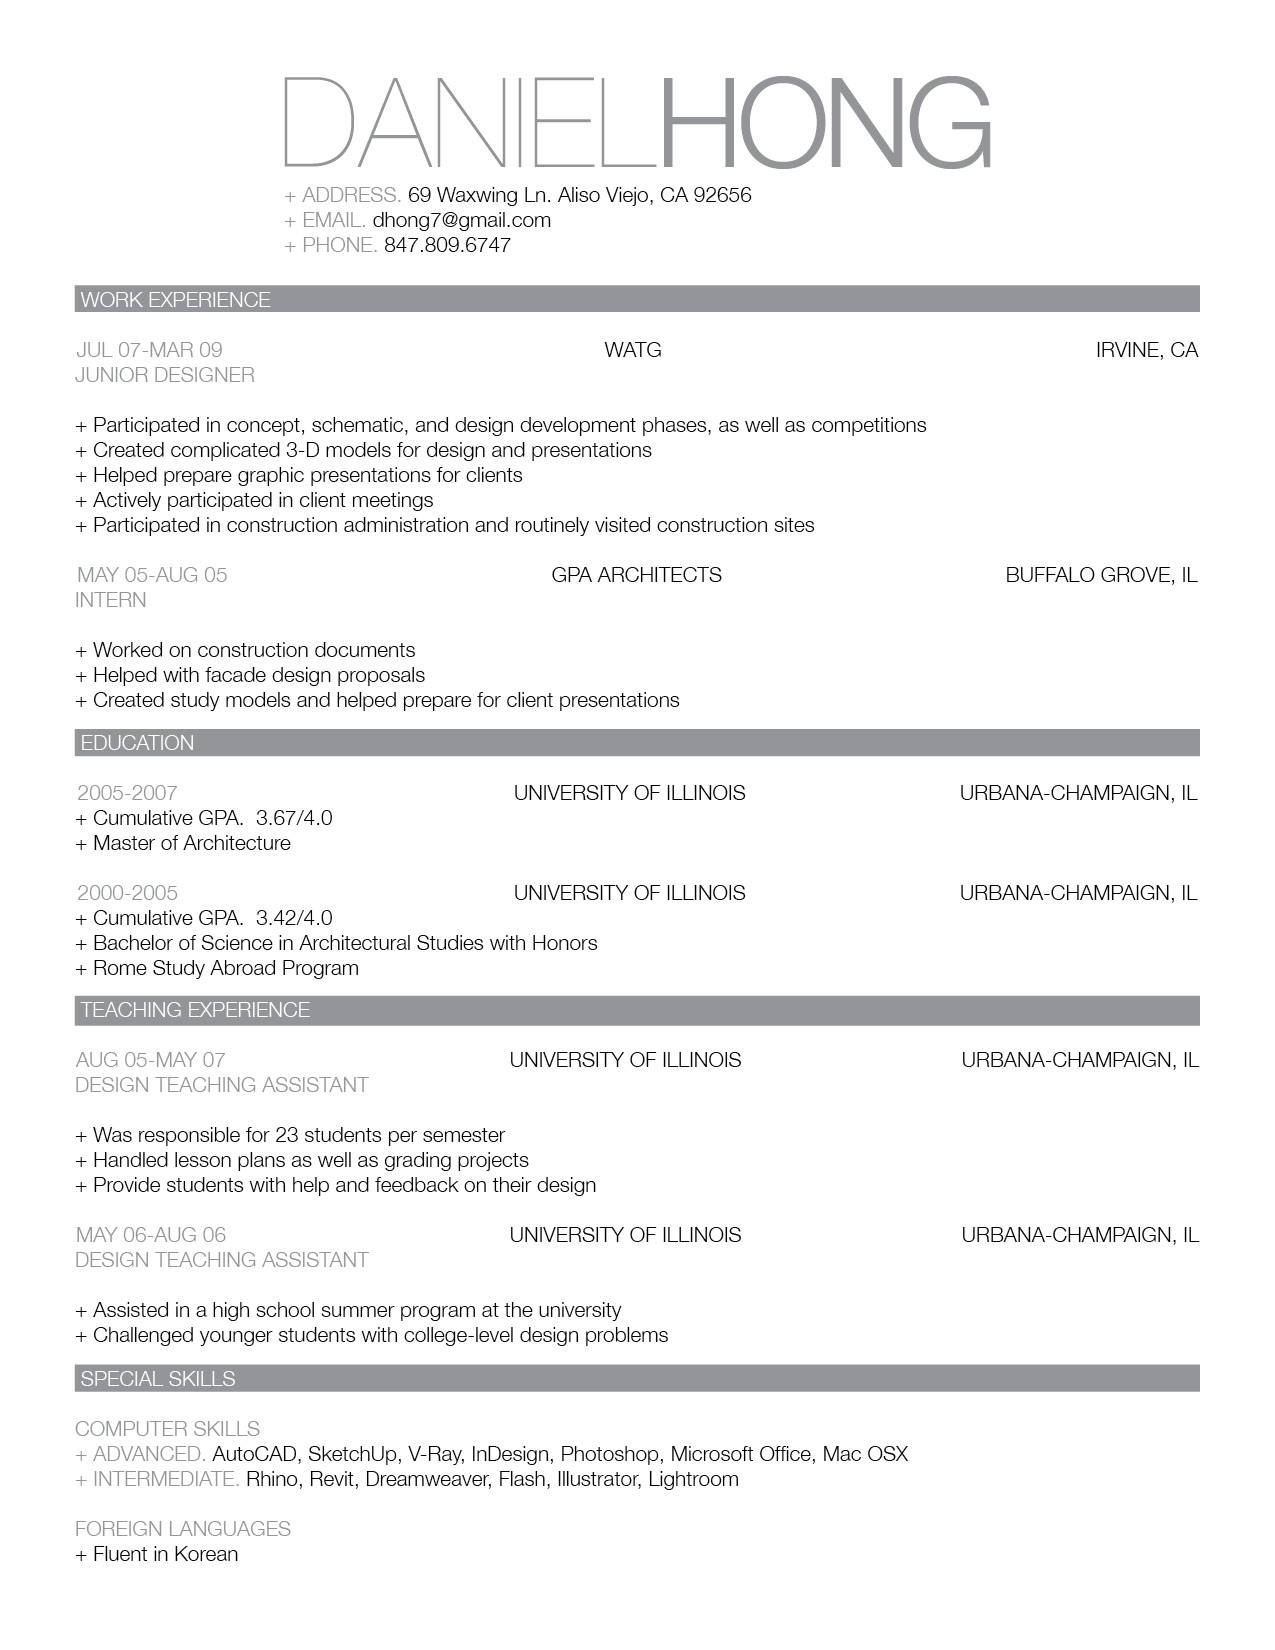 Opposenewapstandardsus  Marvelous Resume Chronological Basic Basic Sample Resume Cover Letter  With Fascinating Simple  With Delectable Profile Examples For Resume Also Resume Services Nj In Addition Personal Website Resume And Resume Builder Login As Well As Resume For General Labor Additionally Electrical Engineer Resume Sample From Writeupdonwebhomeipnet With Opposenewapstandardsus  Fascinating Resume Chronological Basic Basic Sample Resume Cover Letter  With Delectable Simple  And Marvelous Profile Examples For Resume Also Resume Services Nj In Addition Personal Website Resume From Writeupdonwebhomeipnet